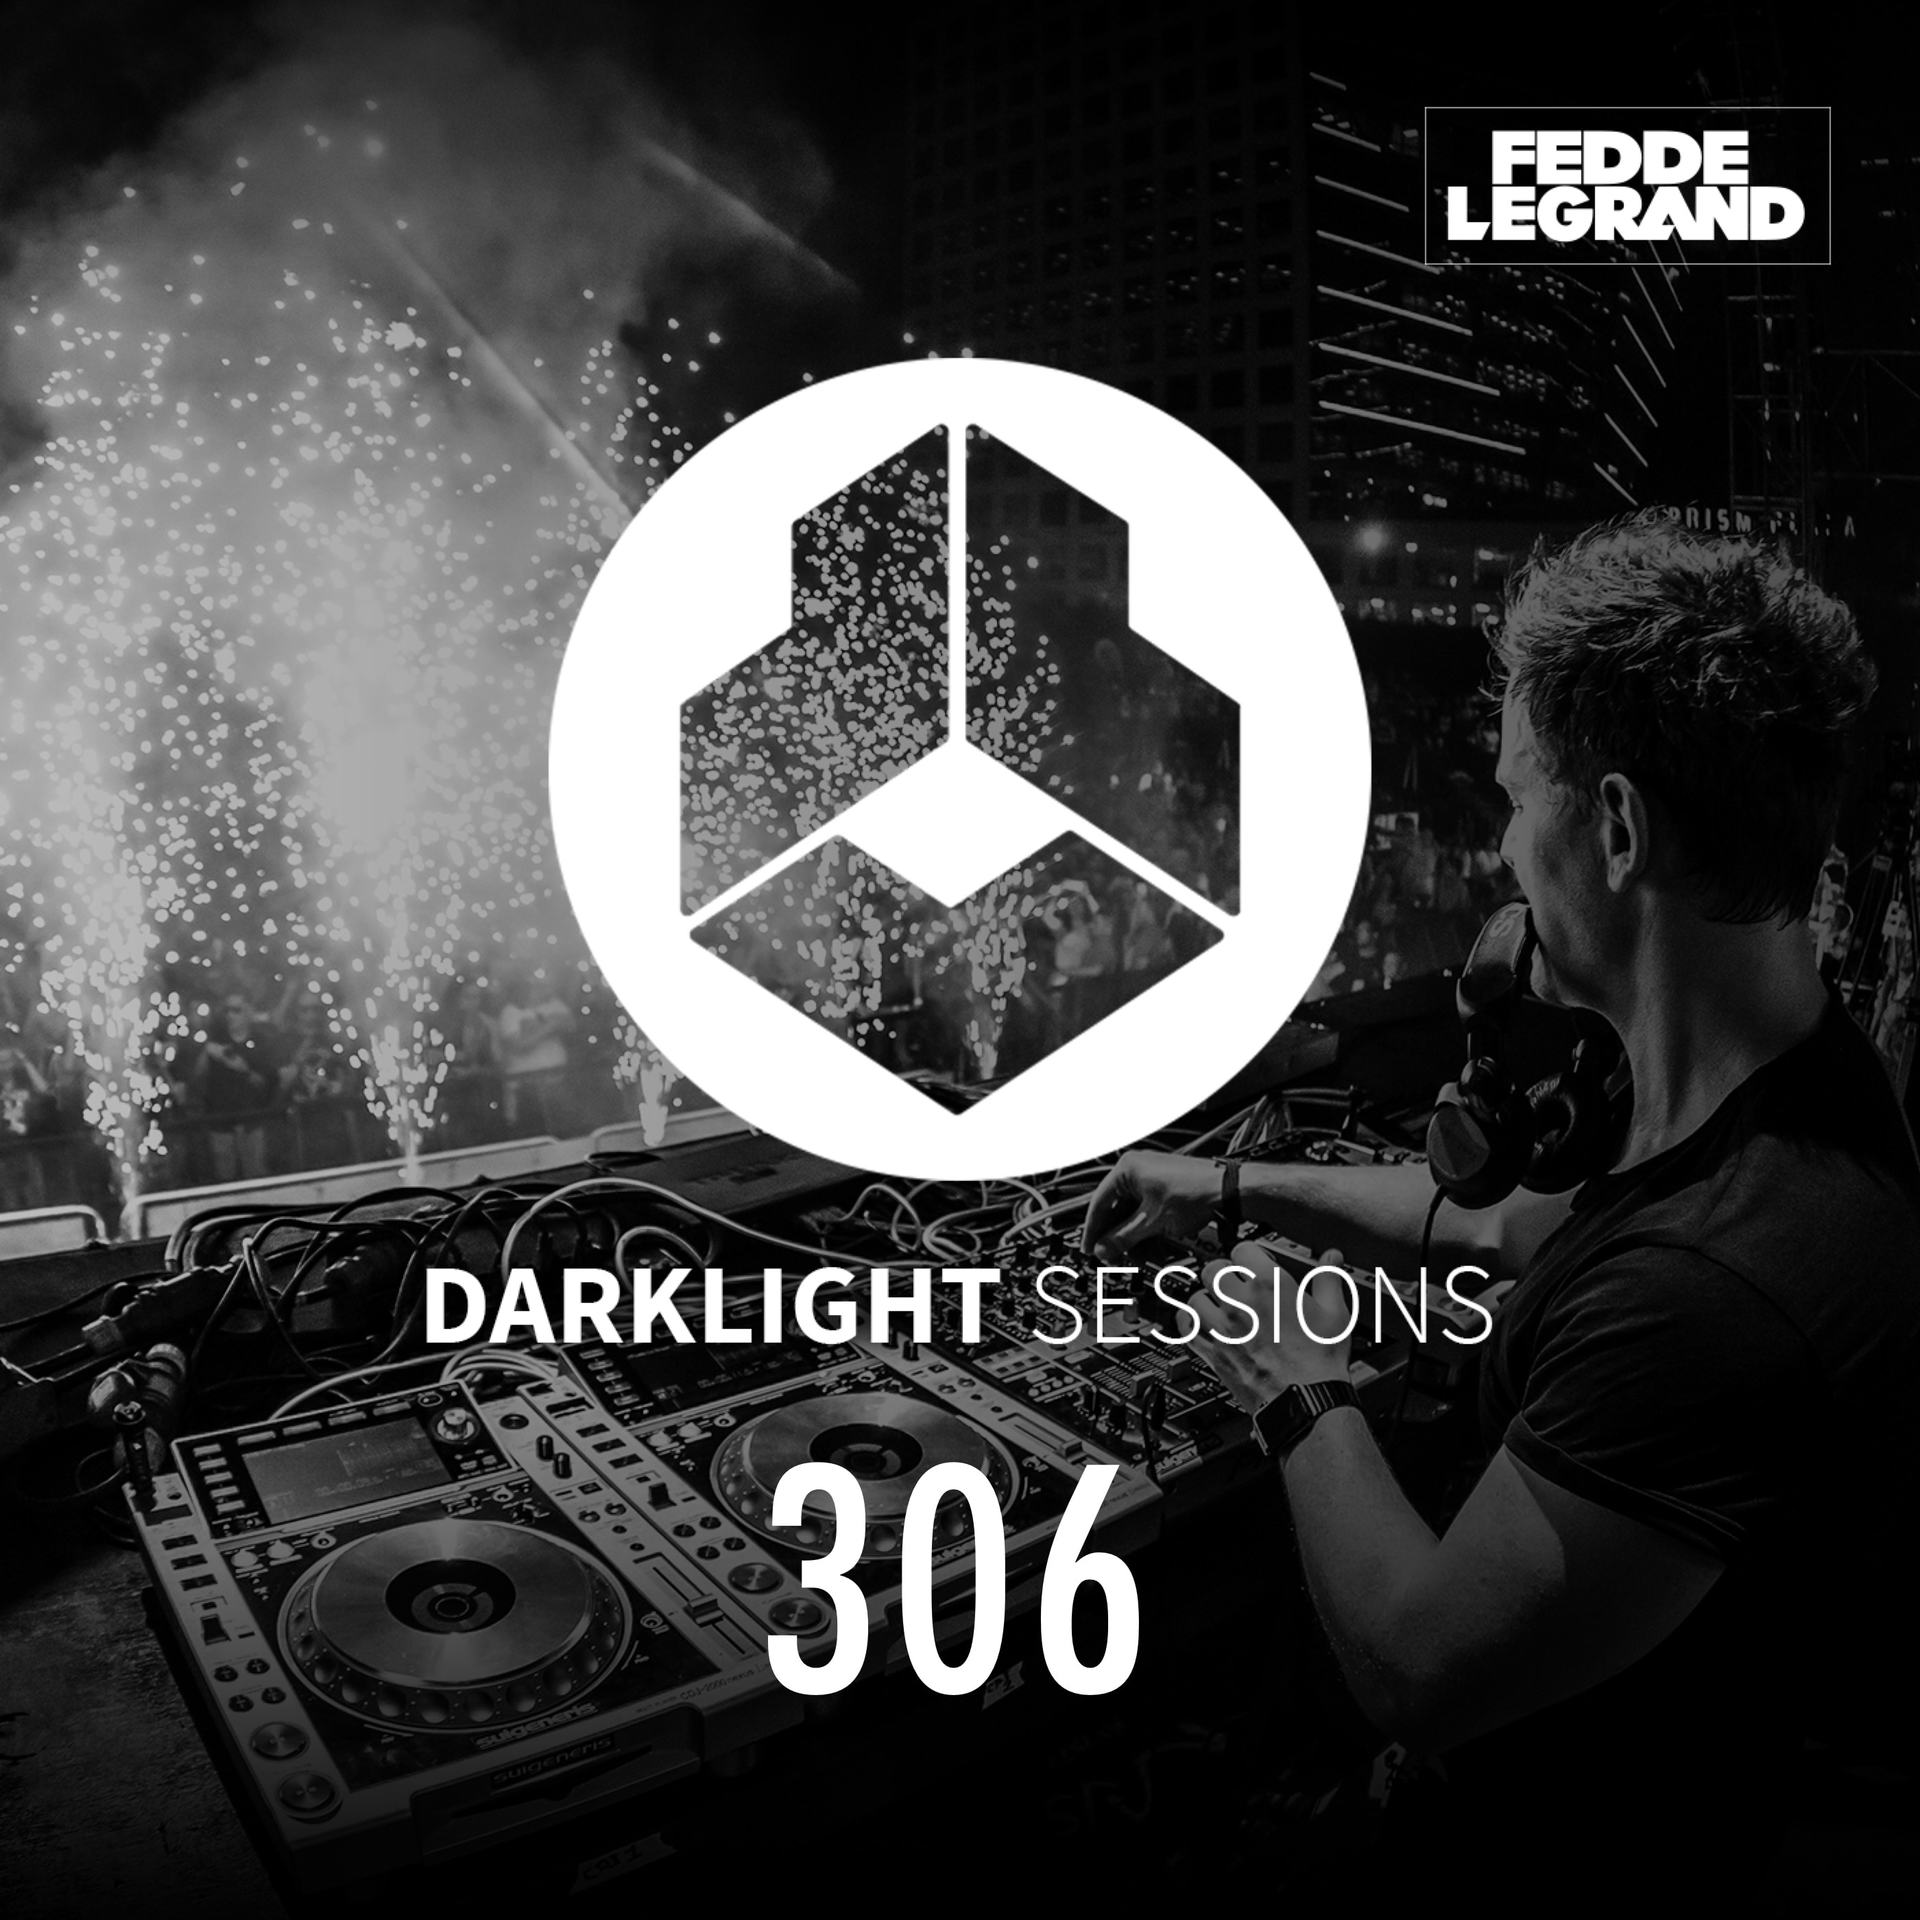 Darklight Sessions 306